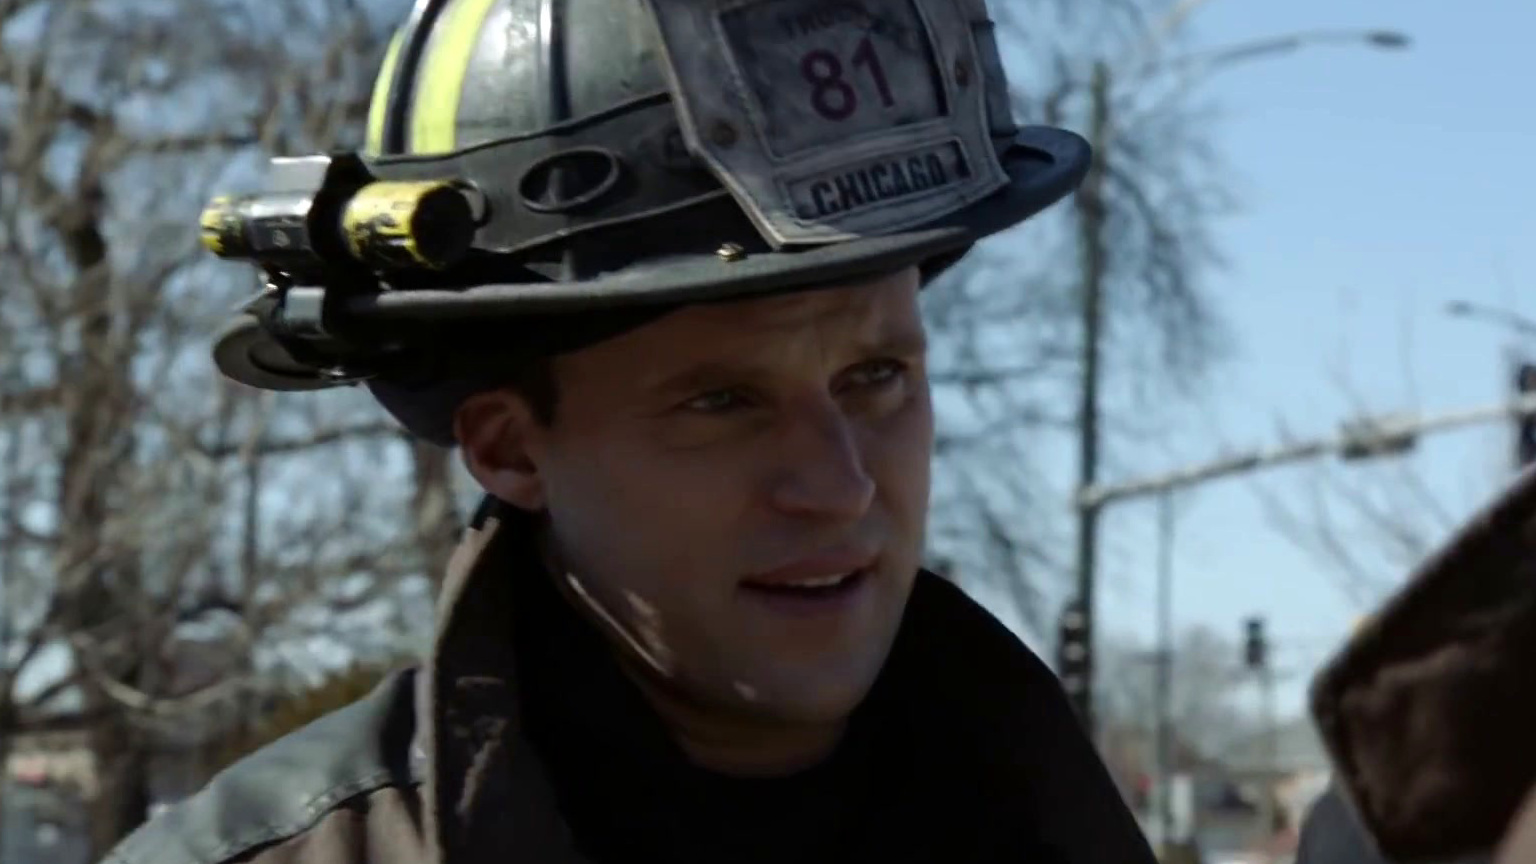 Chicago Fire: Boden Jumps Into Action